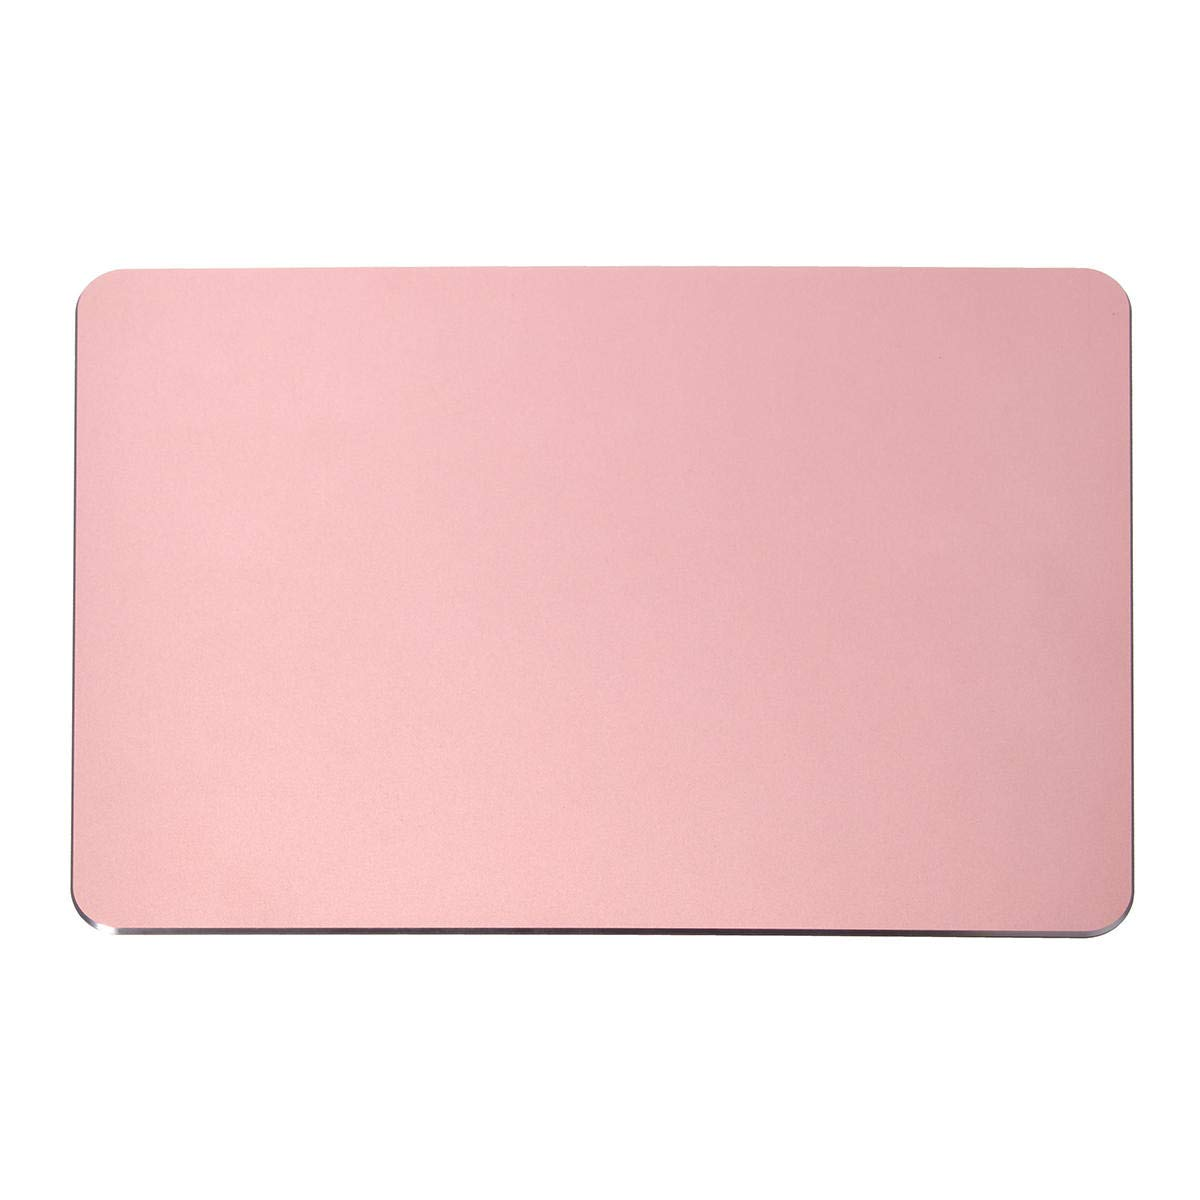 240x170x3mm Luxury Aluminum Alloy Non-Slip Rubber Base Waterproof Mouse Pad - Keyboards & Mouse Mouse pads - (Rose Gold) - 1 240x170x3mm Luxury Aluminum Alloy Non-Slip Rubber Base Waterproof